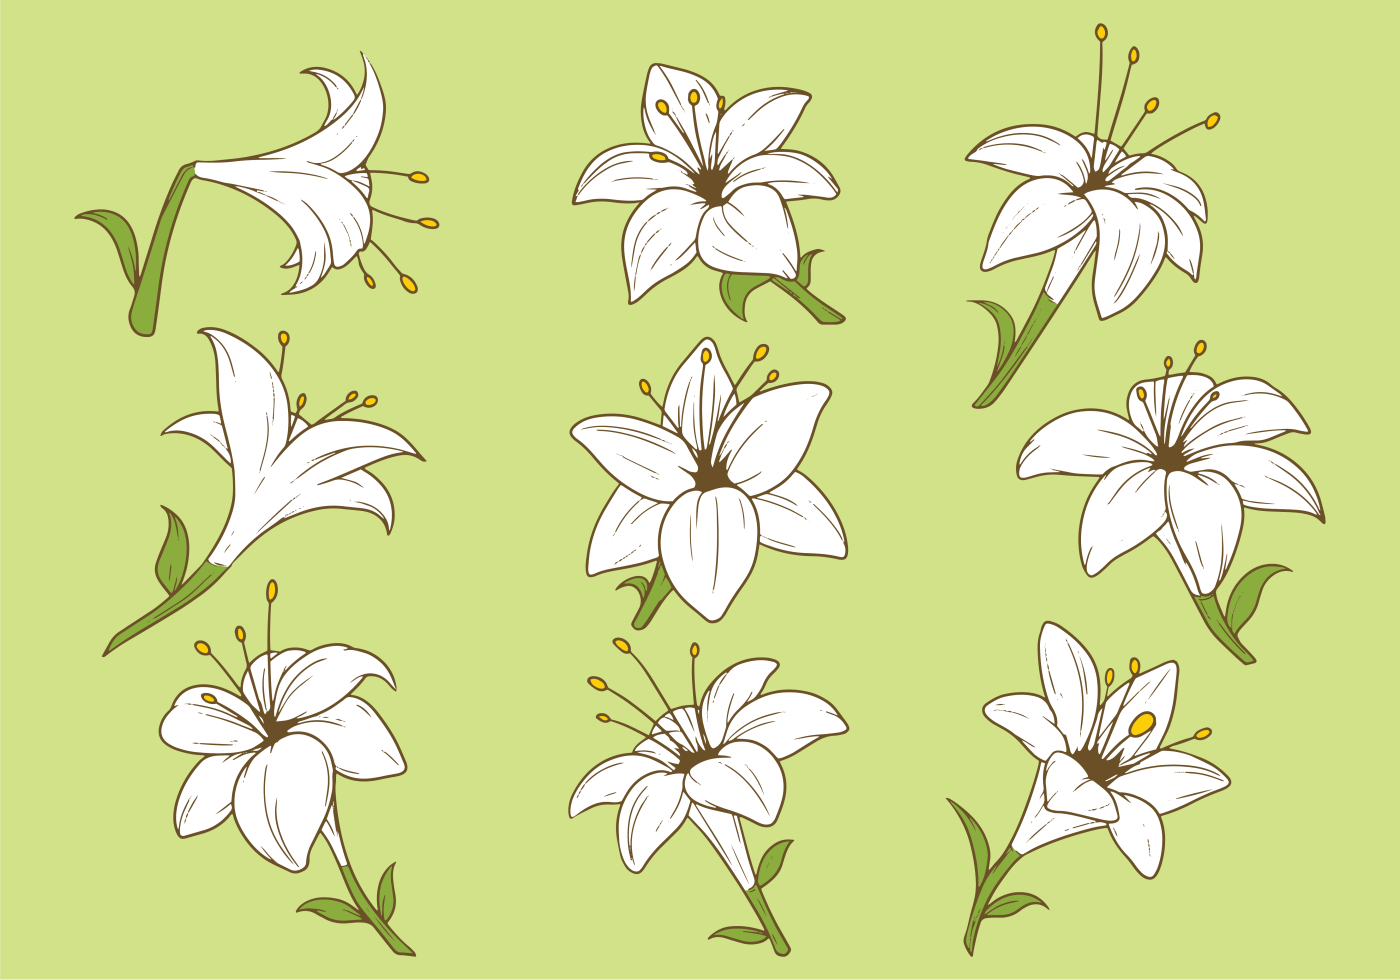 Easter Lily Plant Vector - Download Free Vector Art, Stock ...